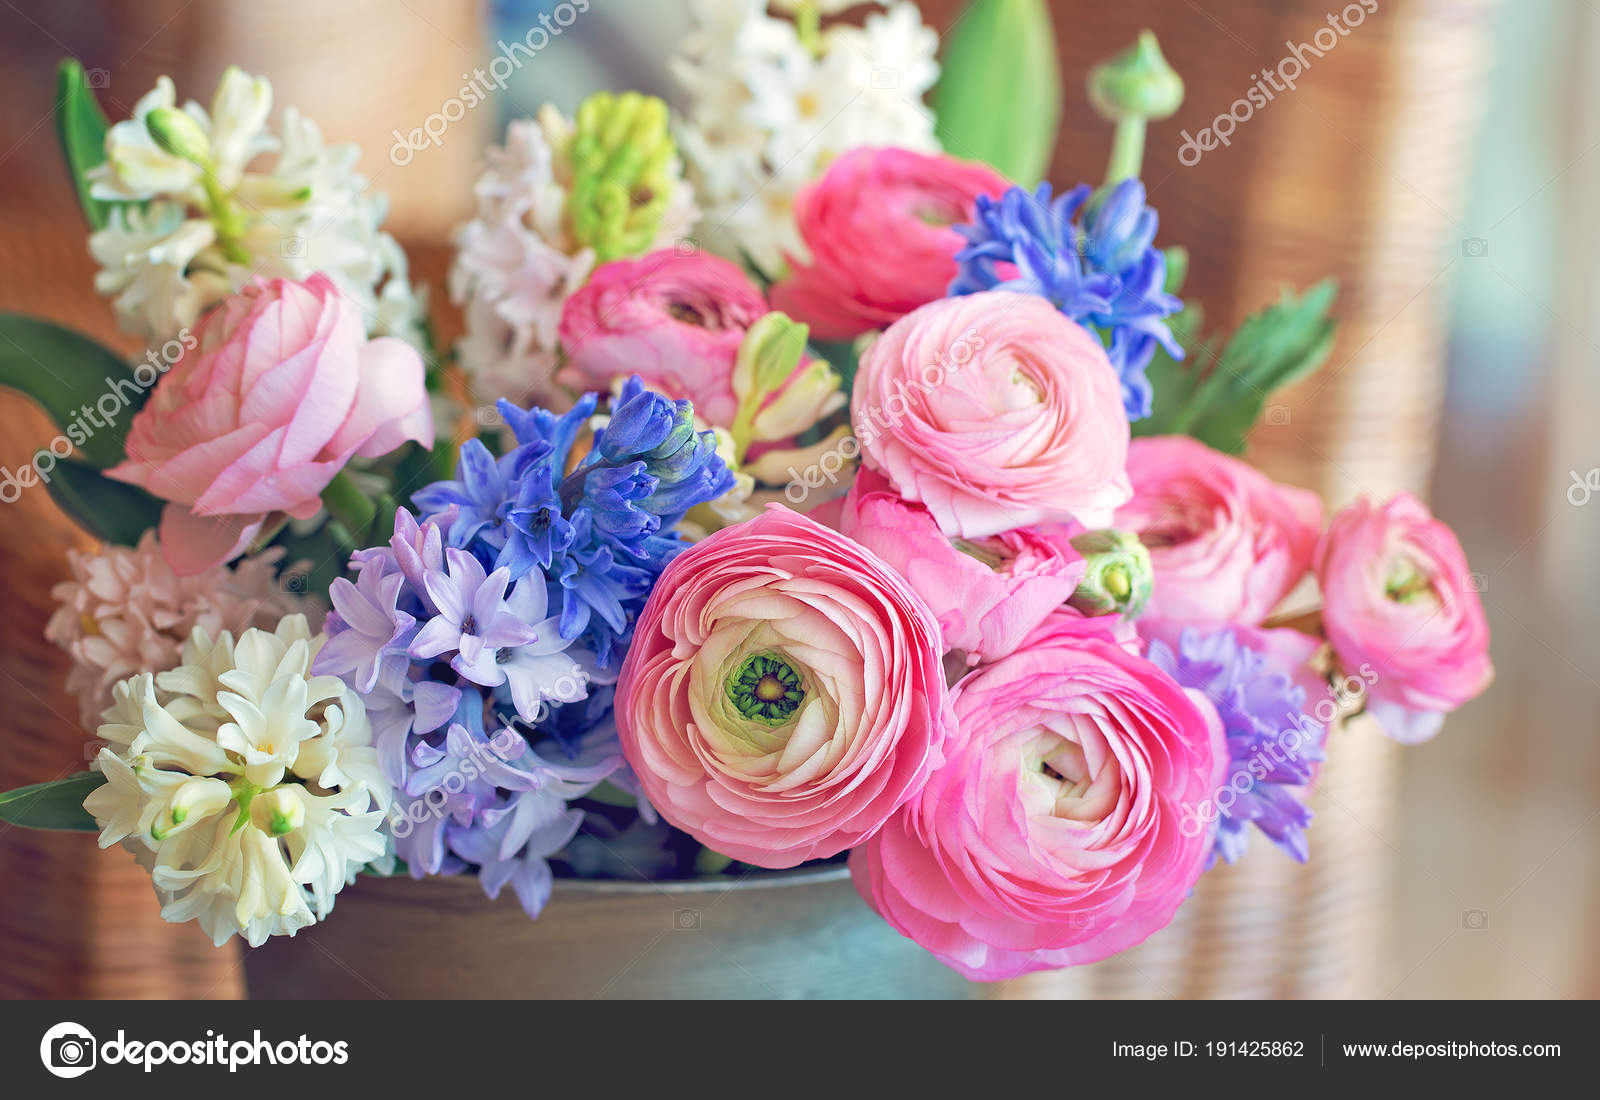 Beautiful Bouquet Spring Flowers Vase Table Lovely Bunch Flowers ...